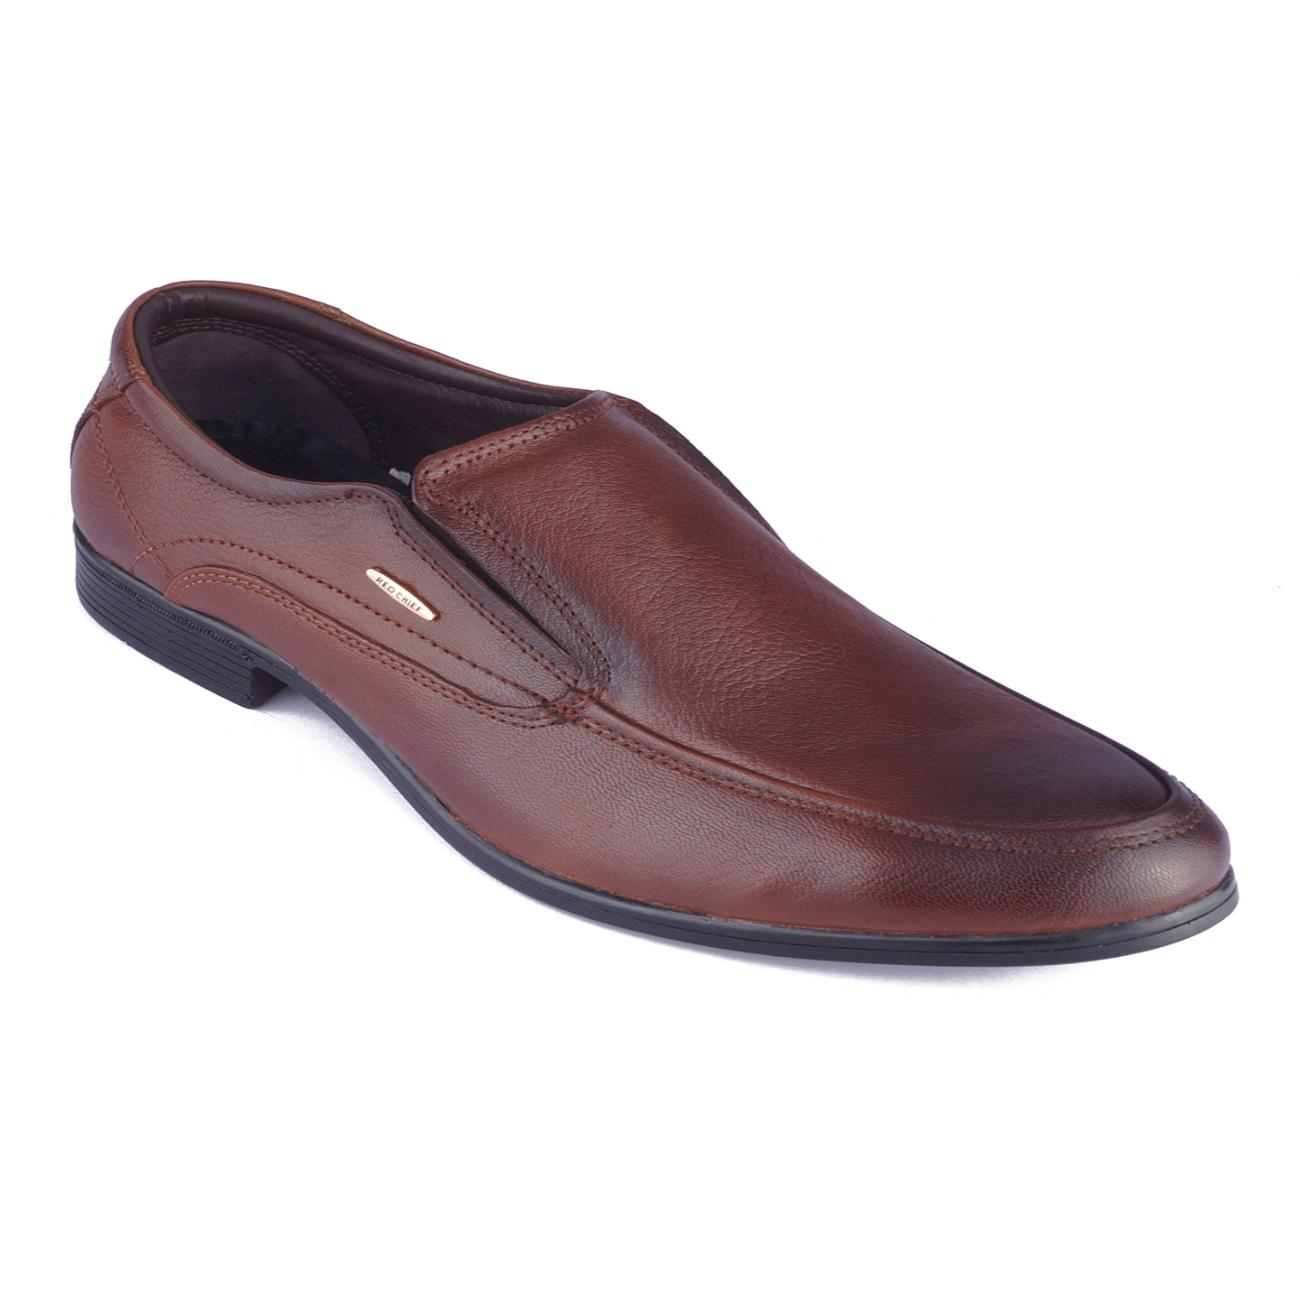 tan leather slip-on formal shoes online